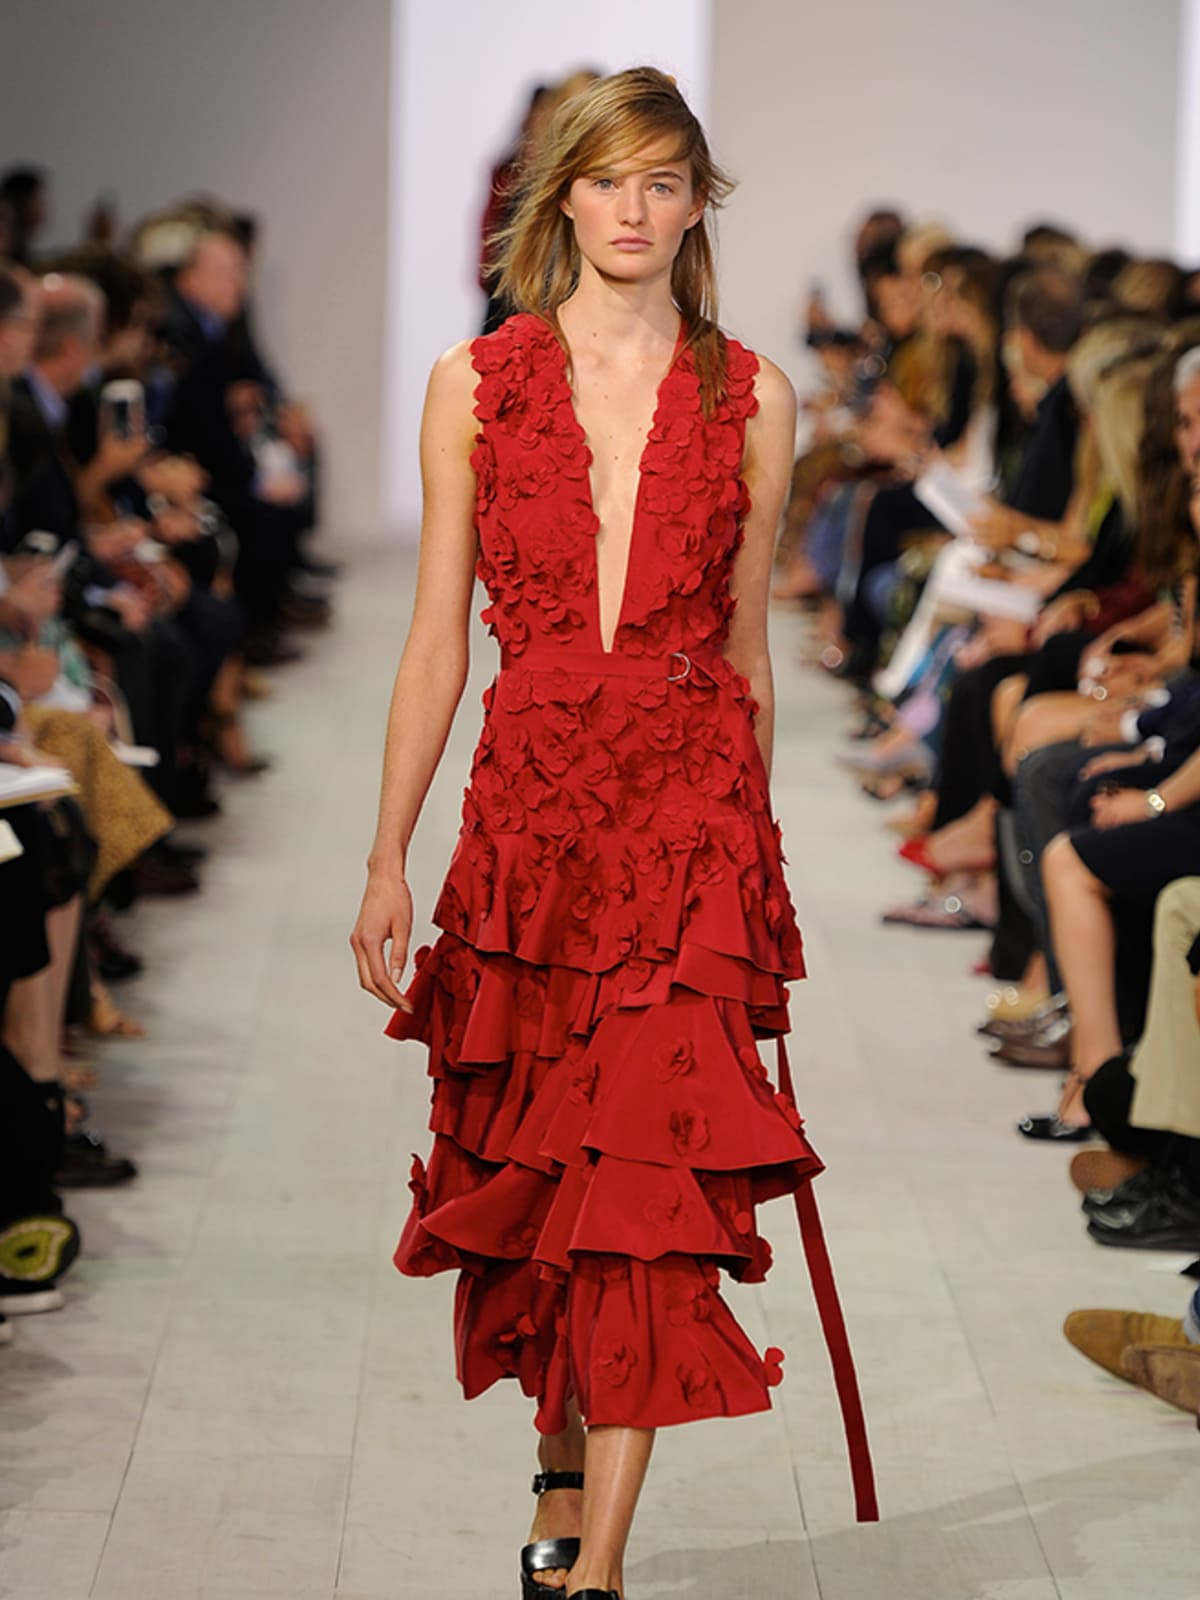 Michael Kors look 8 spring 2016 collection